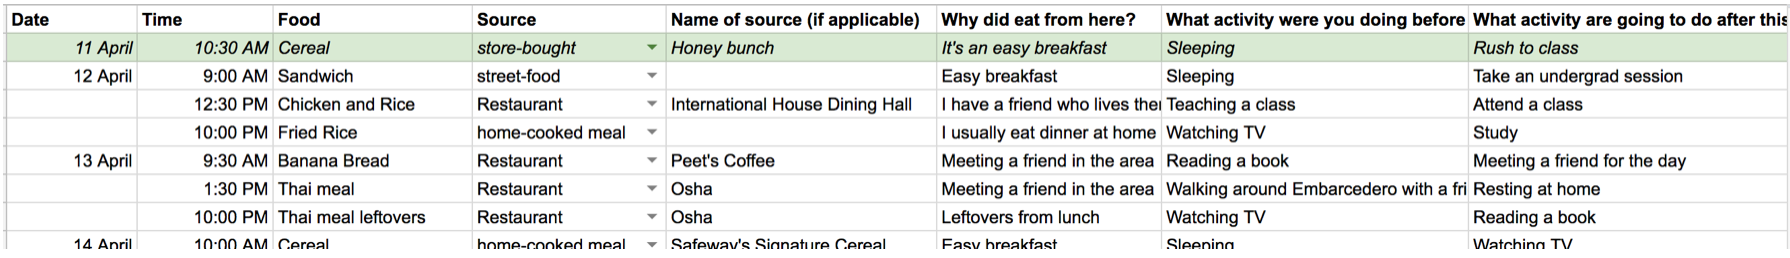 Figure: Google Sheet of a participant in the diary study